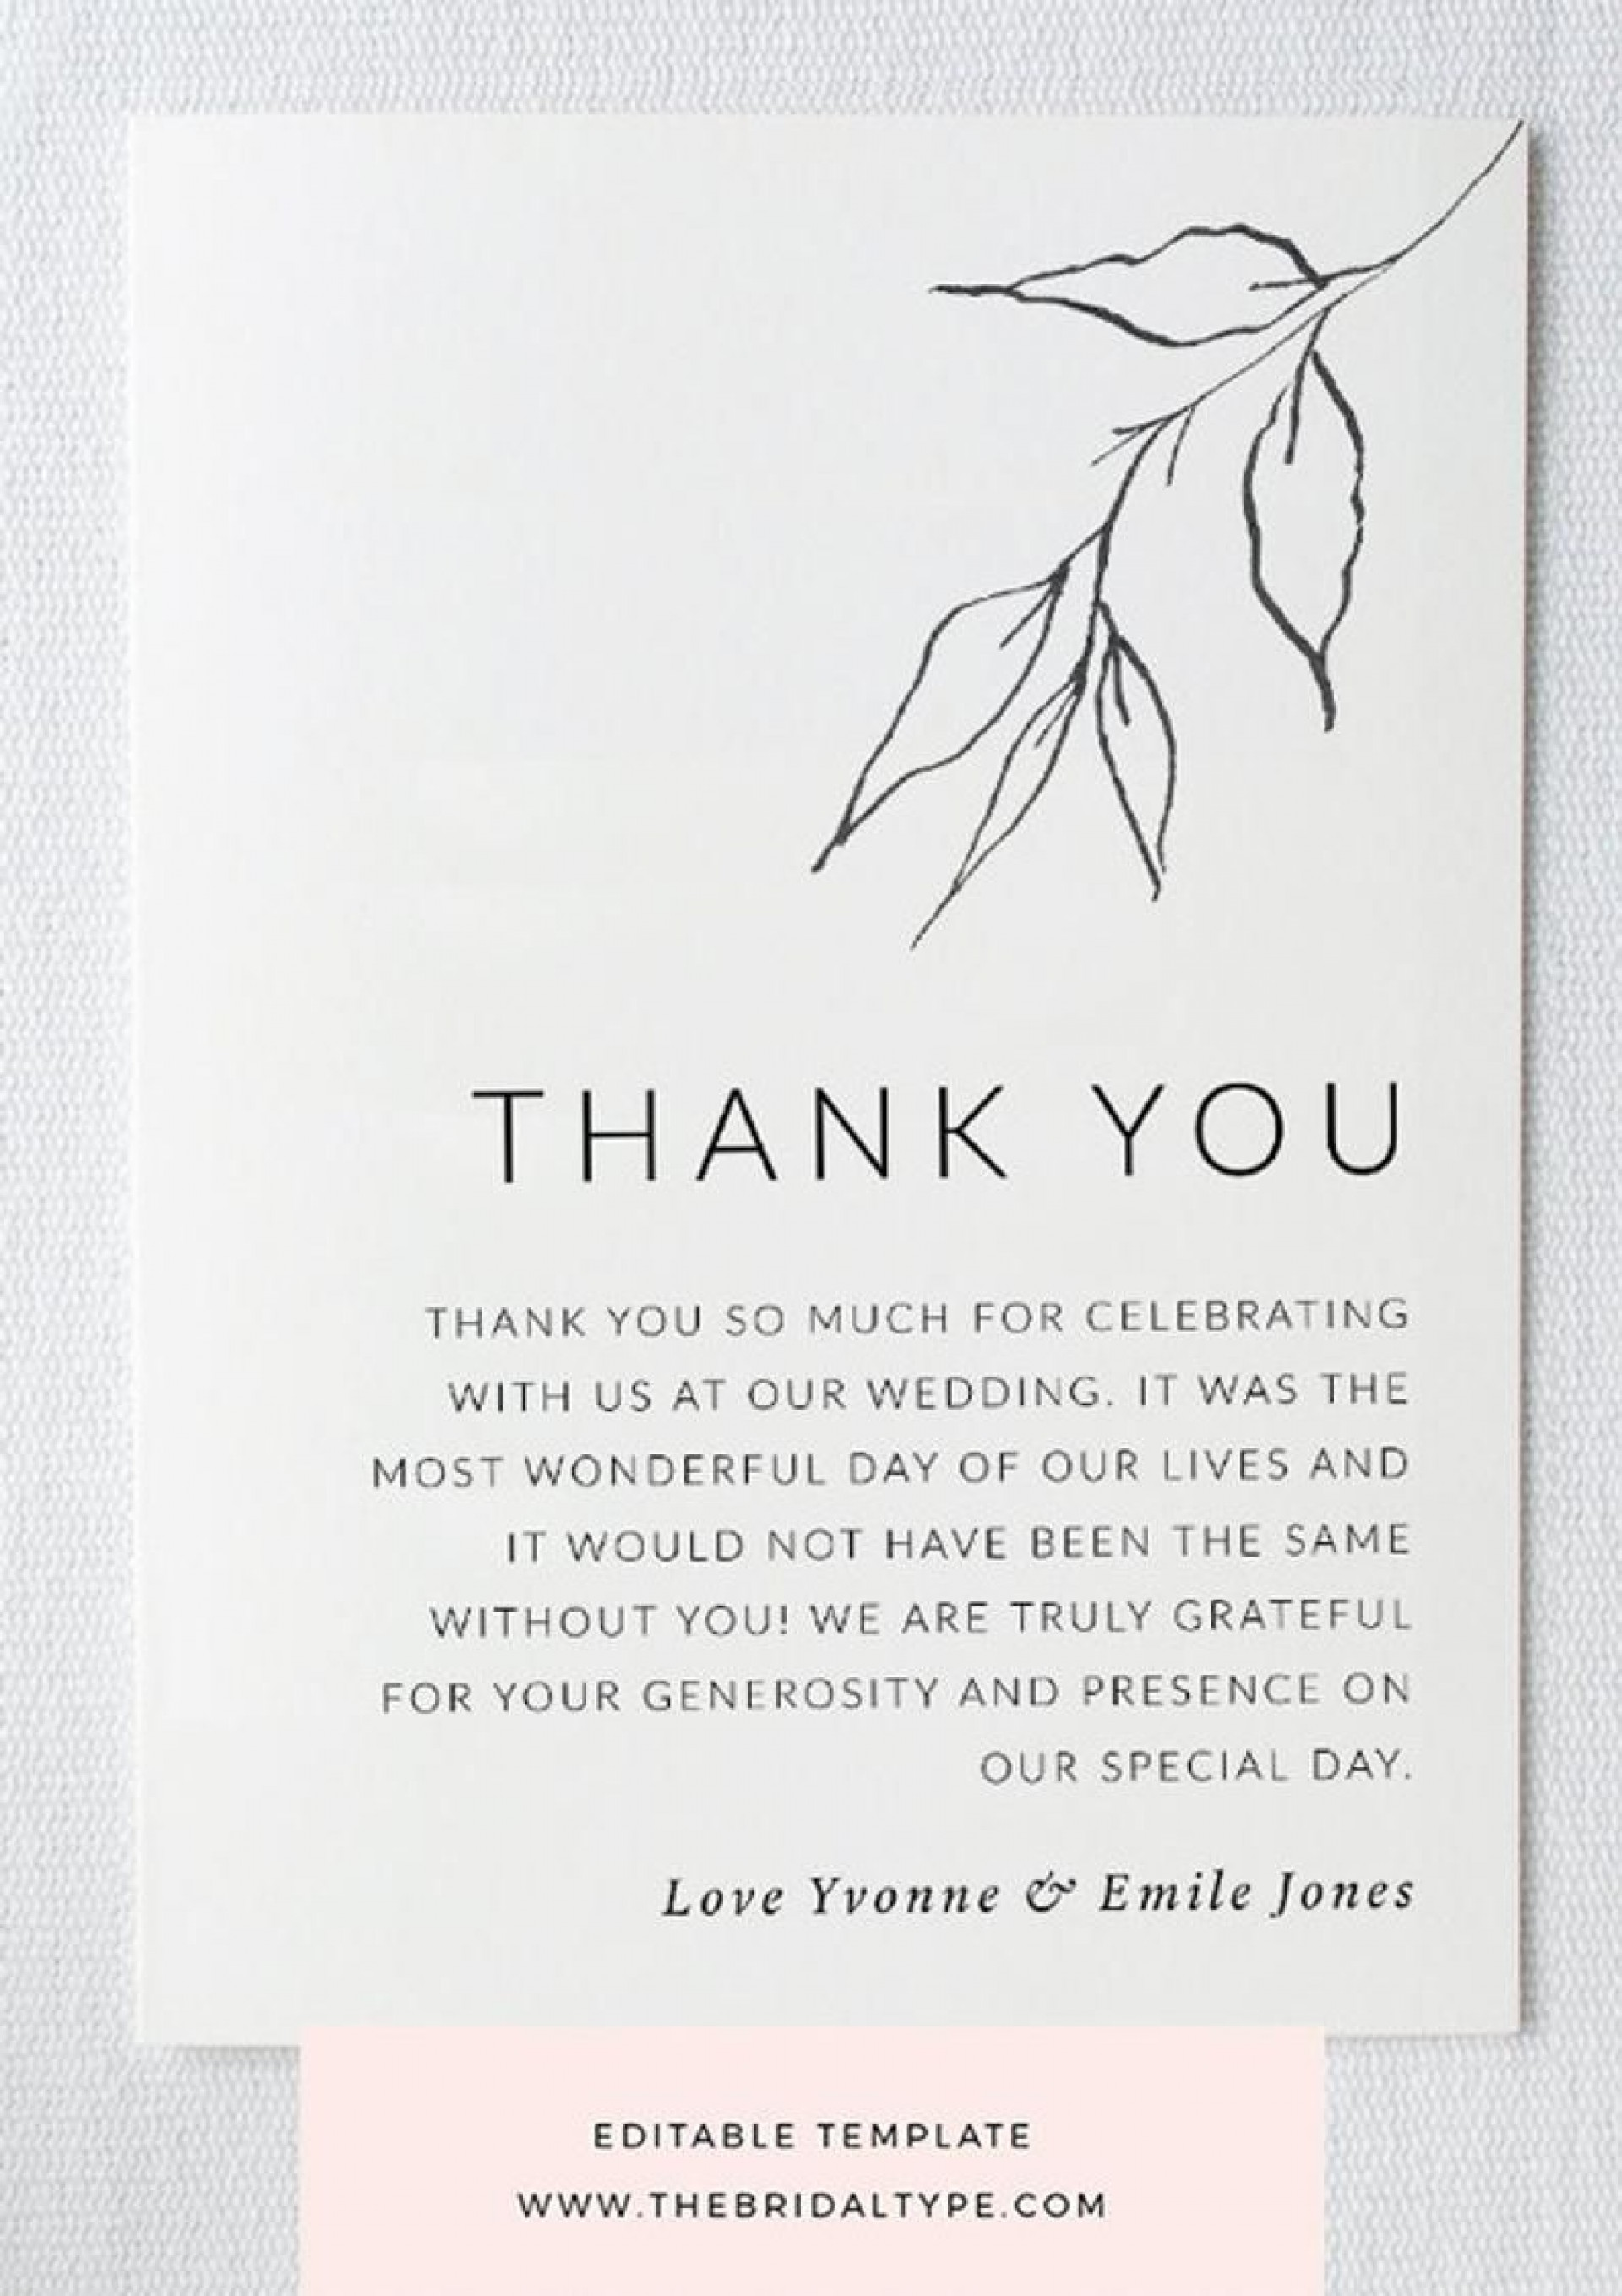 005 Wonderful Thank You Note For Wedding Guest Template Photo  Card1920